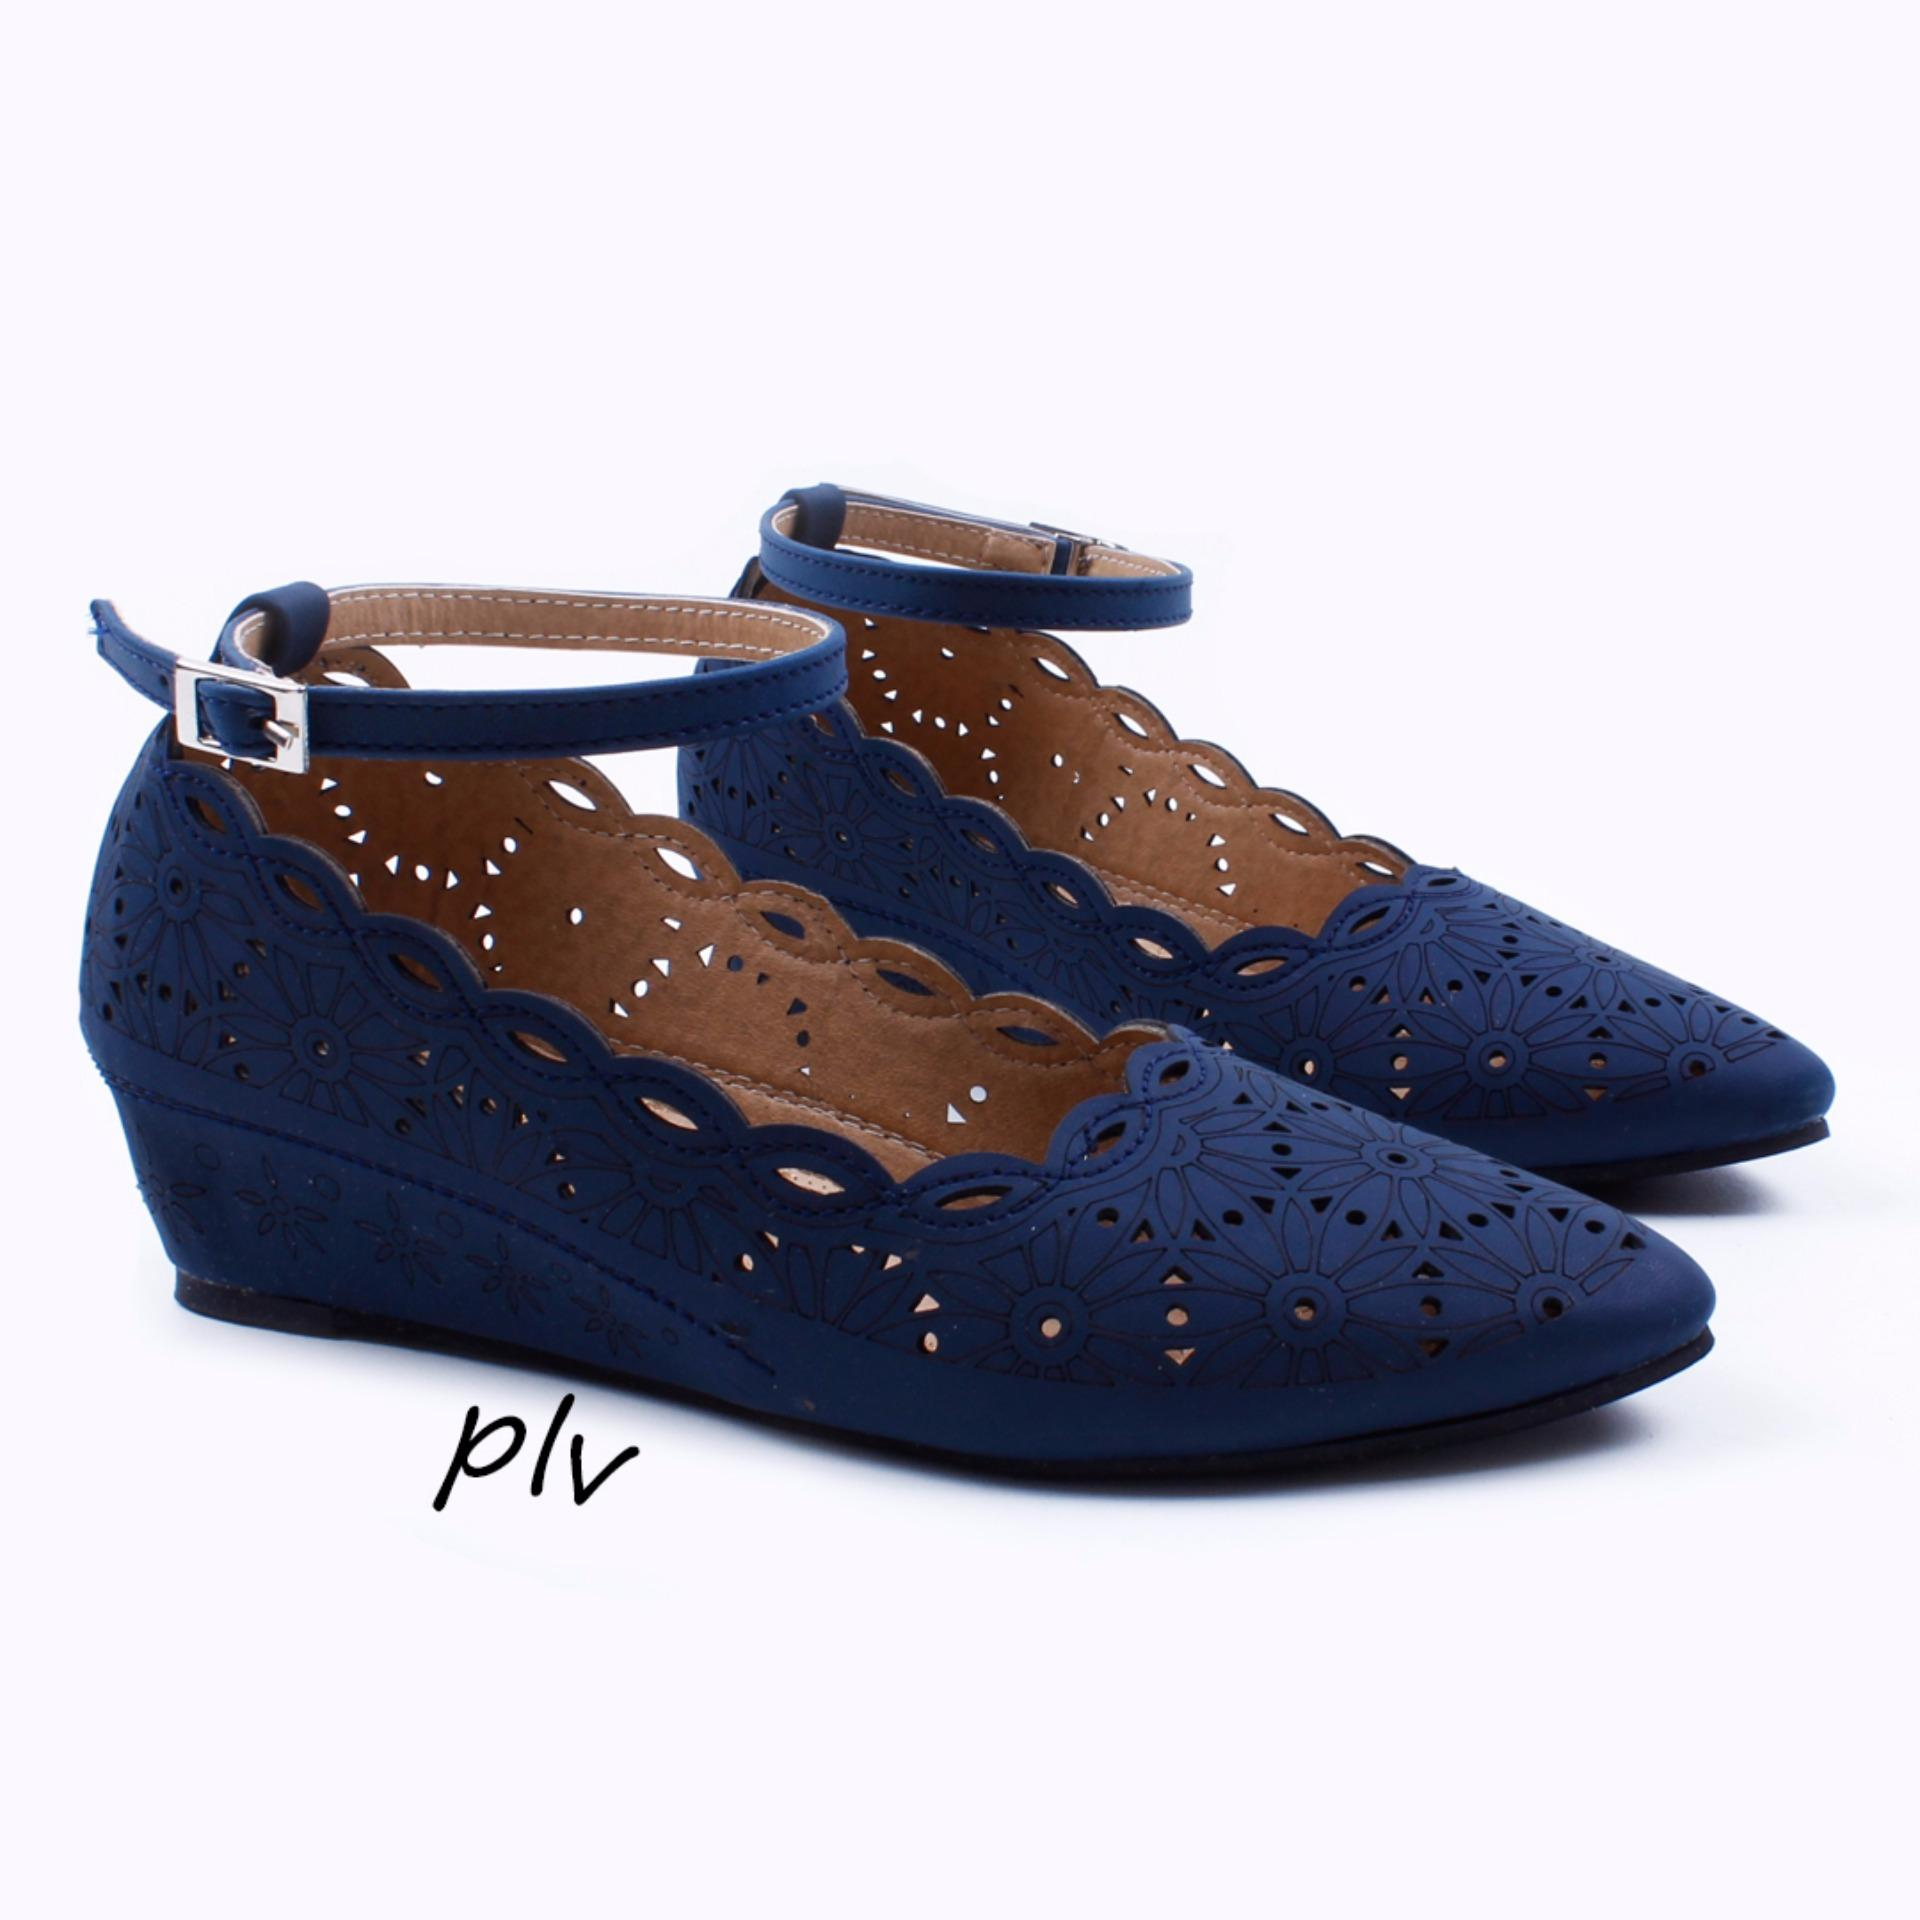 Dimana Beli Pointed Toe Ankle Strap Hidden Heel Wedges Bs27 Navy Pluvia